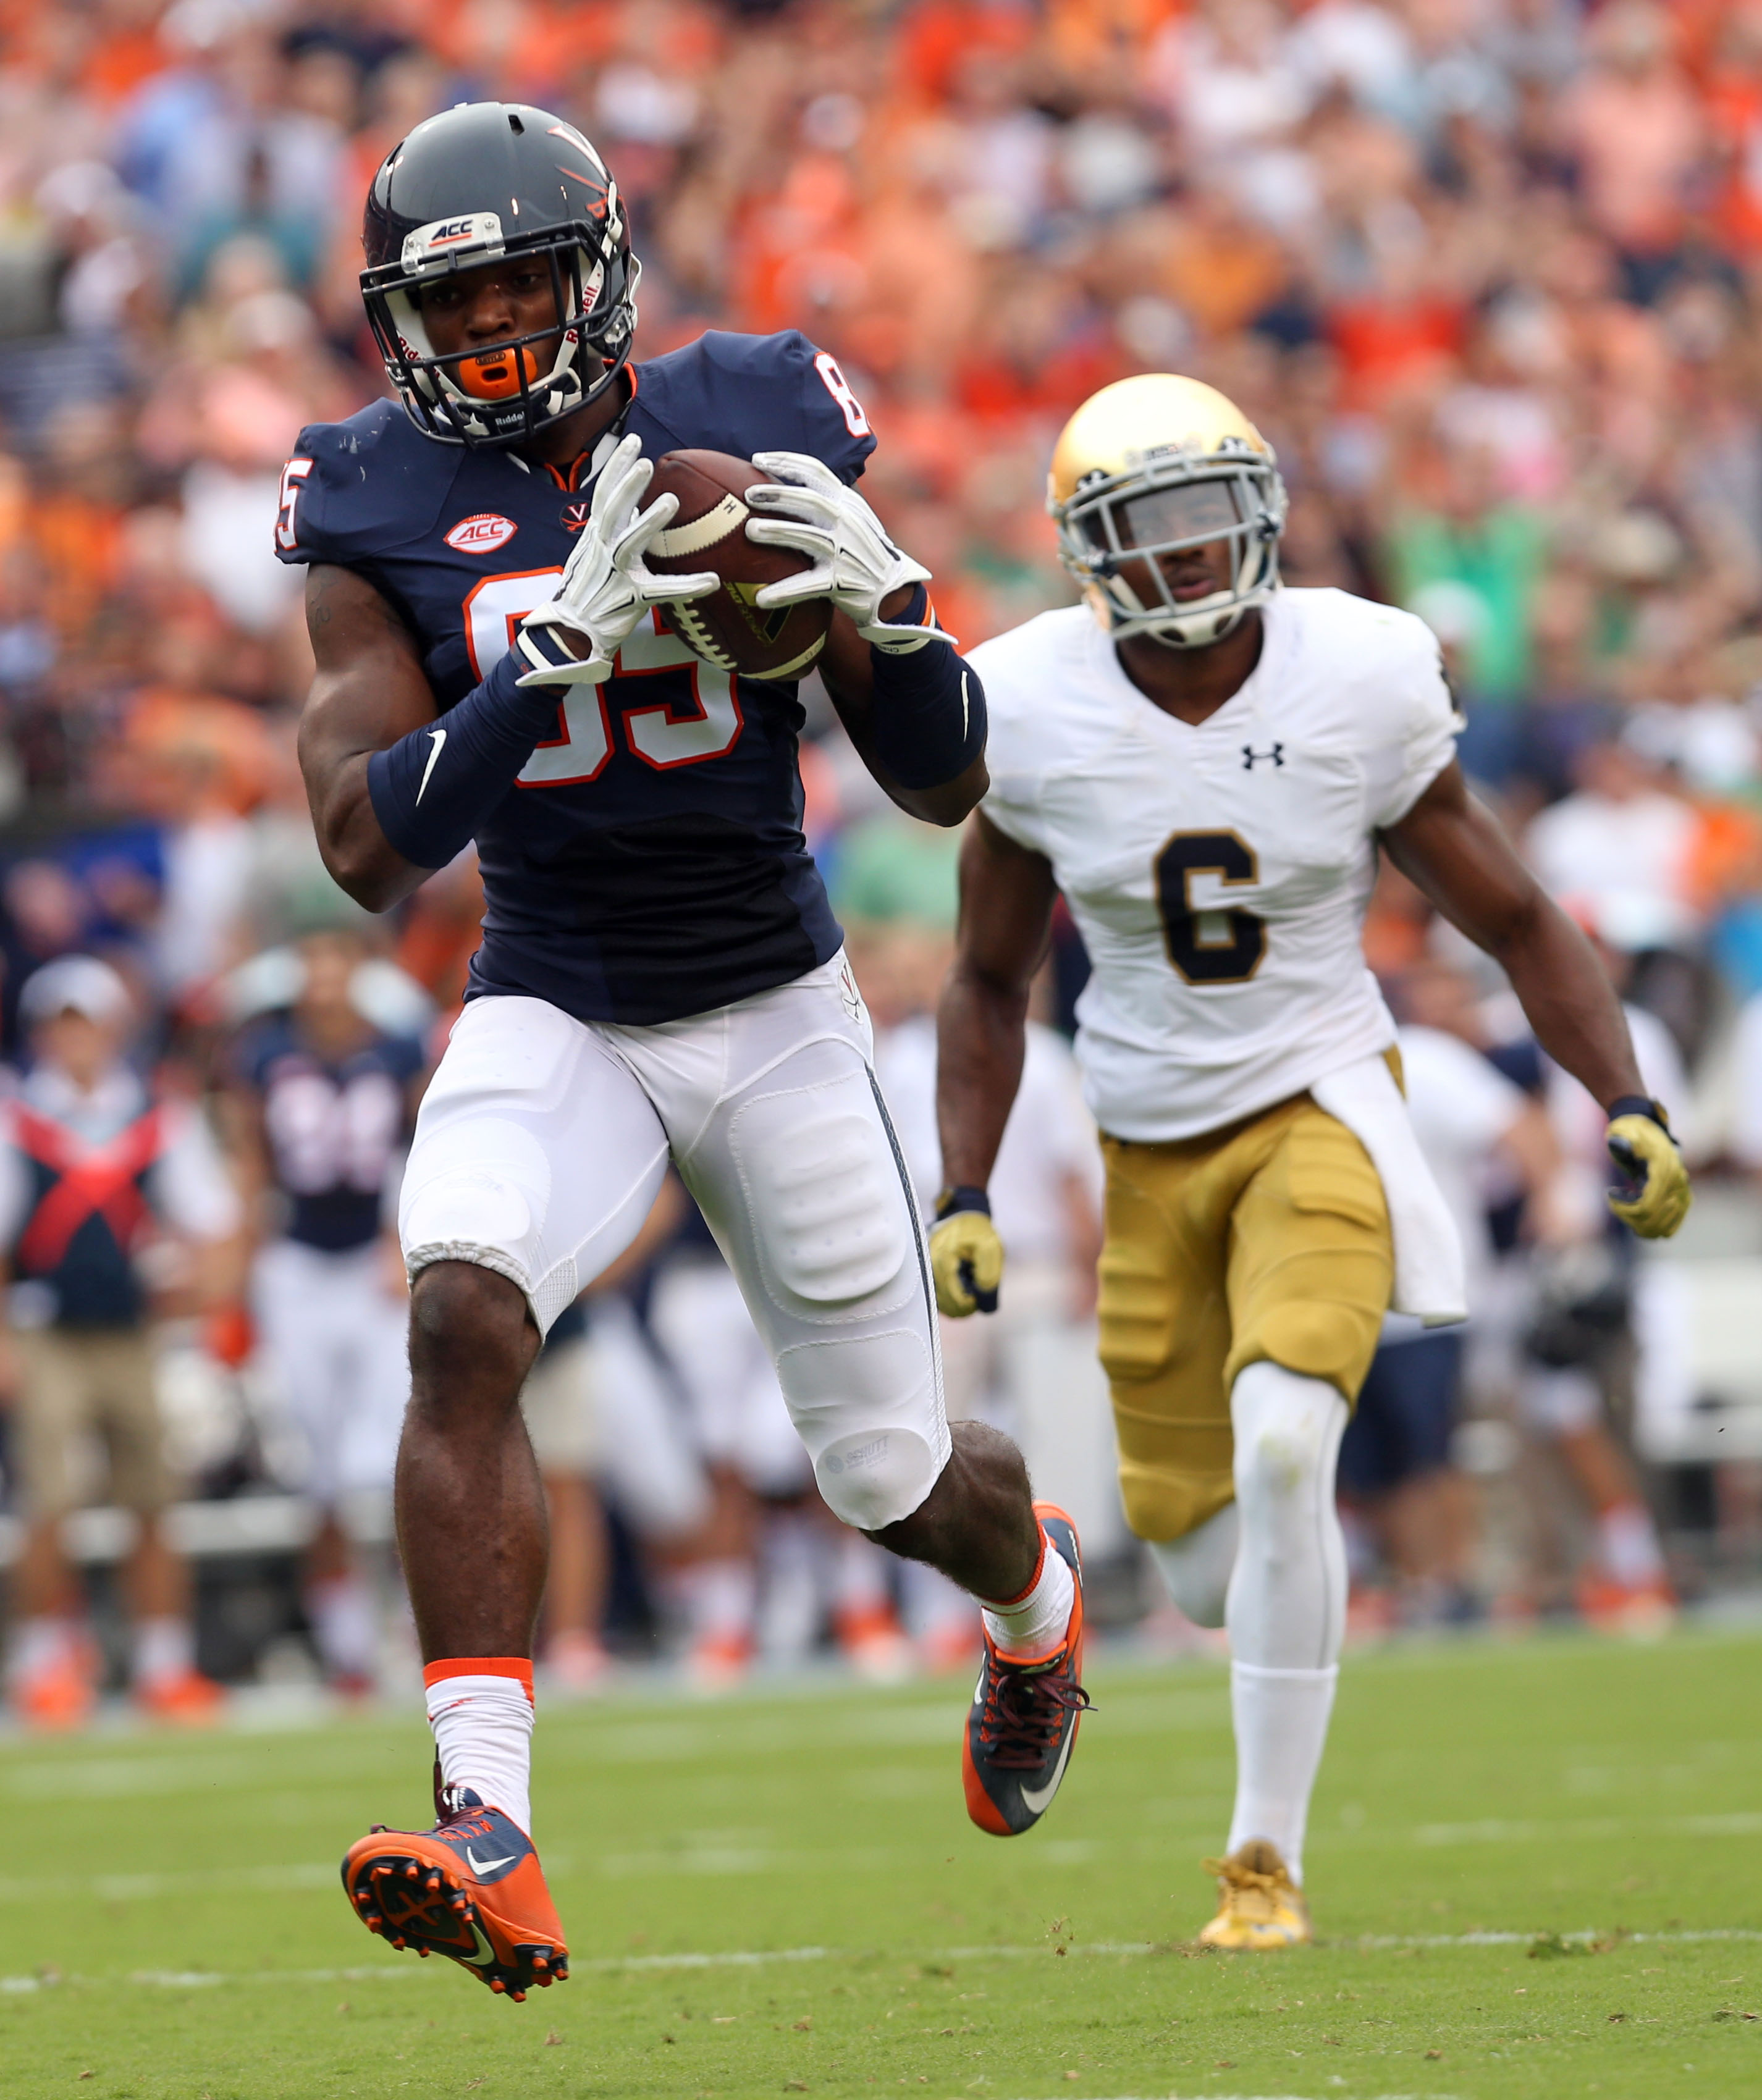 Virginia wide receiver Keeon Johnson (85) runs in a touchdown pass in front of Notre Dame cornerback KeiVarae Russell (6) during an NCAA college football game Saturday, Sept. 12, 2015, in Charlottesville, Va. (AP Photo/Andrew Shurtleff)